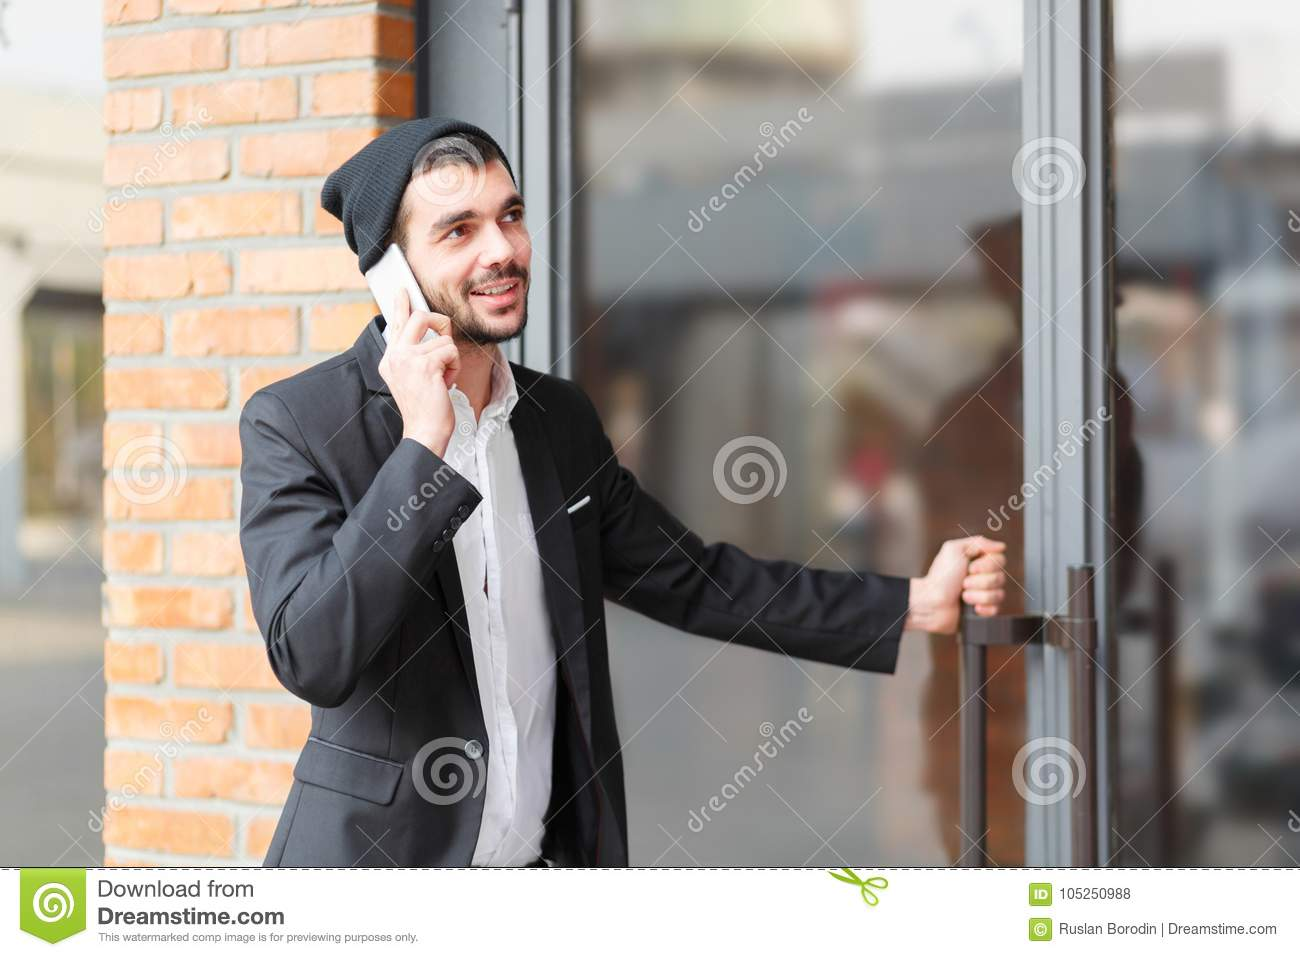 Young businessman speaks on the phone and opens the door of the building